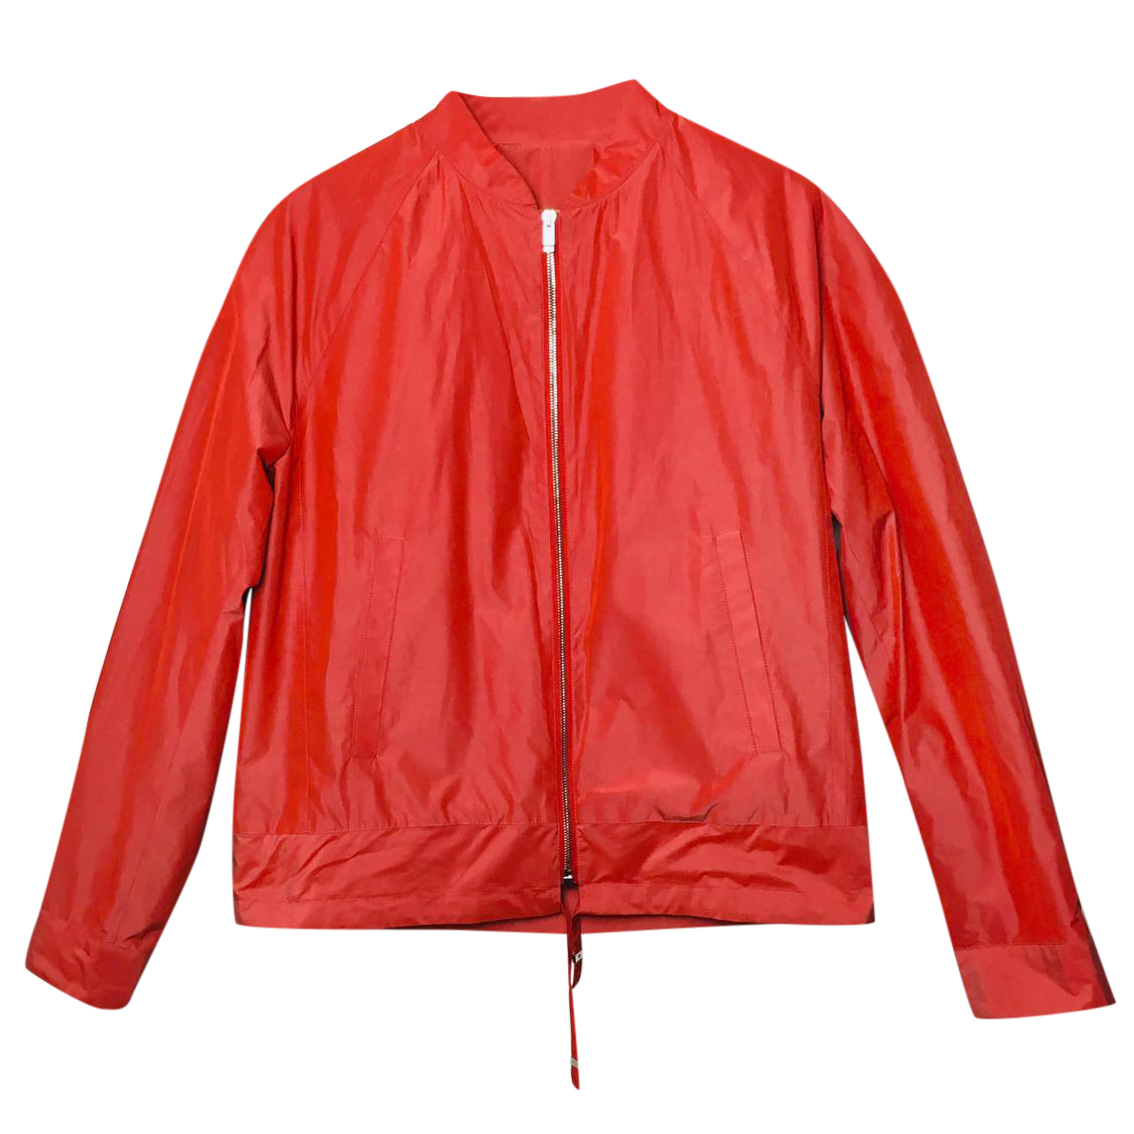 Balenciaga red bomber jacket